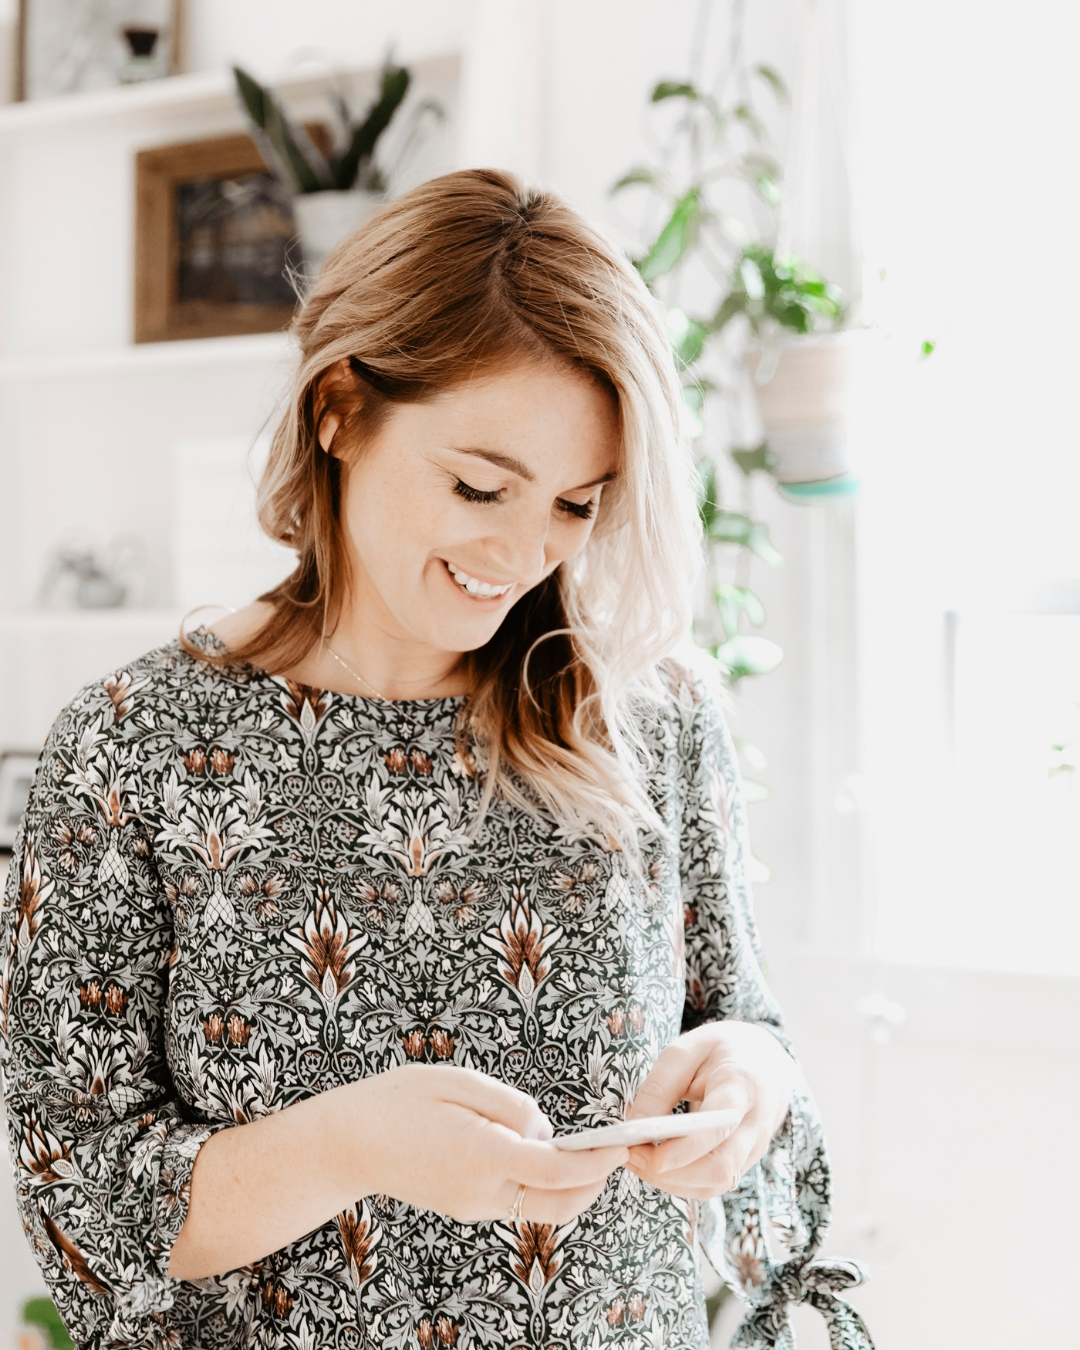 woman looking down and laughing at her iphone wearing patterned dress